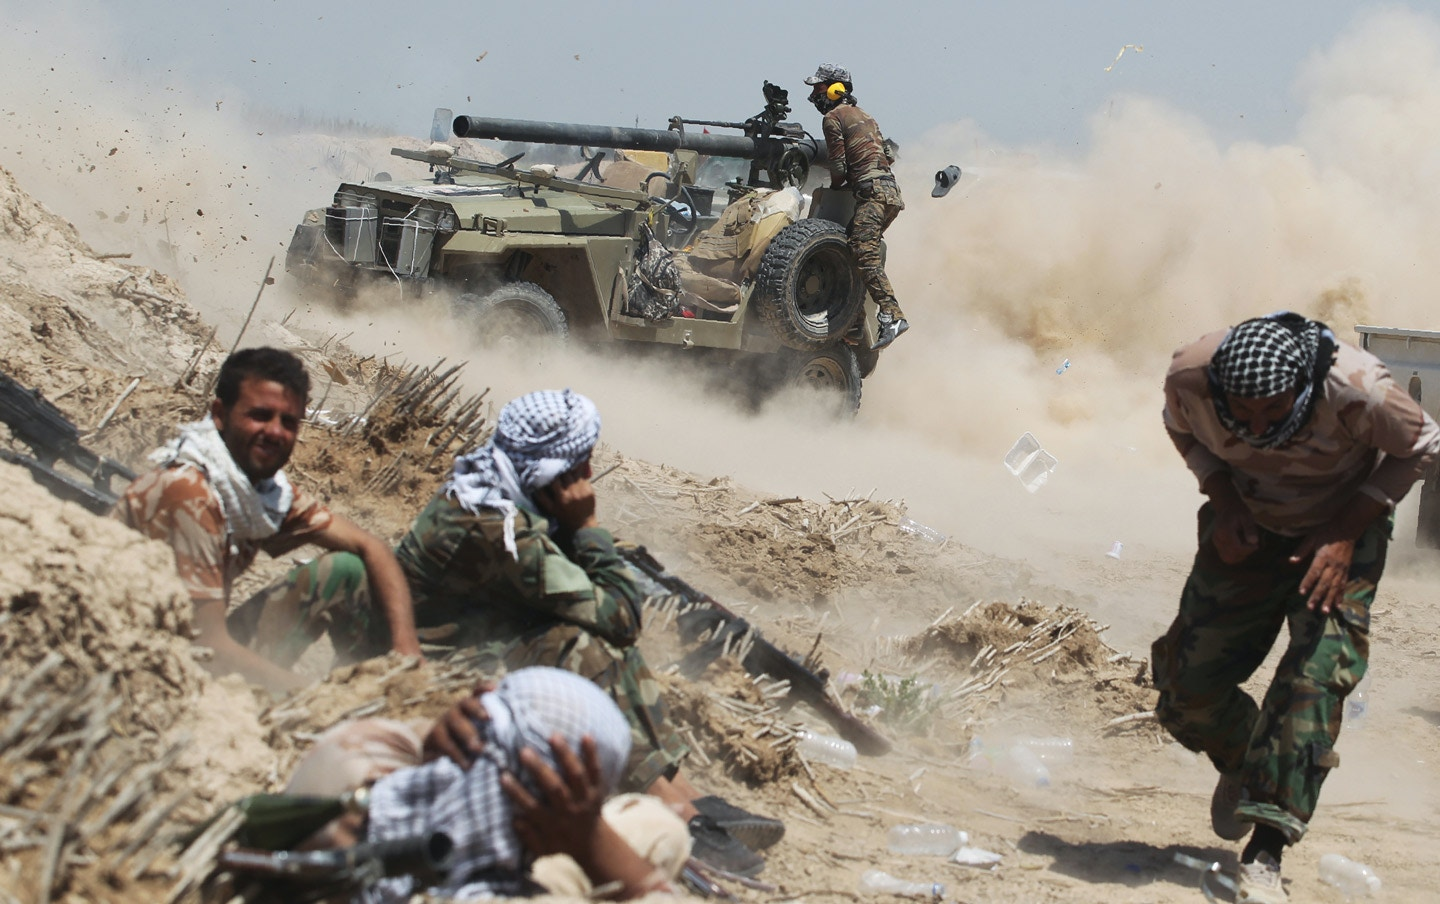 TOPSHOT - Iraqi pro-government forces fire an anti-tank cannon near al-Sejar village, north-east of Fallujah, on May 25, 2016, as they take part in a major assault to retake the city from the Islamic State (IS) group.<br /> Iraqi forces, consisting of special forces, soldiers, police, paramilitary-fighters and pro-government tribesmen, launched a major assault to retake Fallujah, the scene of deadly battles during the US occupation and one of the toughest targets yet in Baghdad's war on the Islamic State group. / AFP / AHMAD AL-RUBAYE        (Photo credit should read AHMAD AL-RUBAYE/AFP/Getty Images)